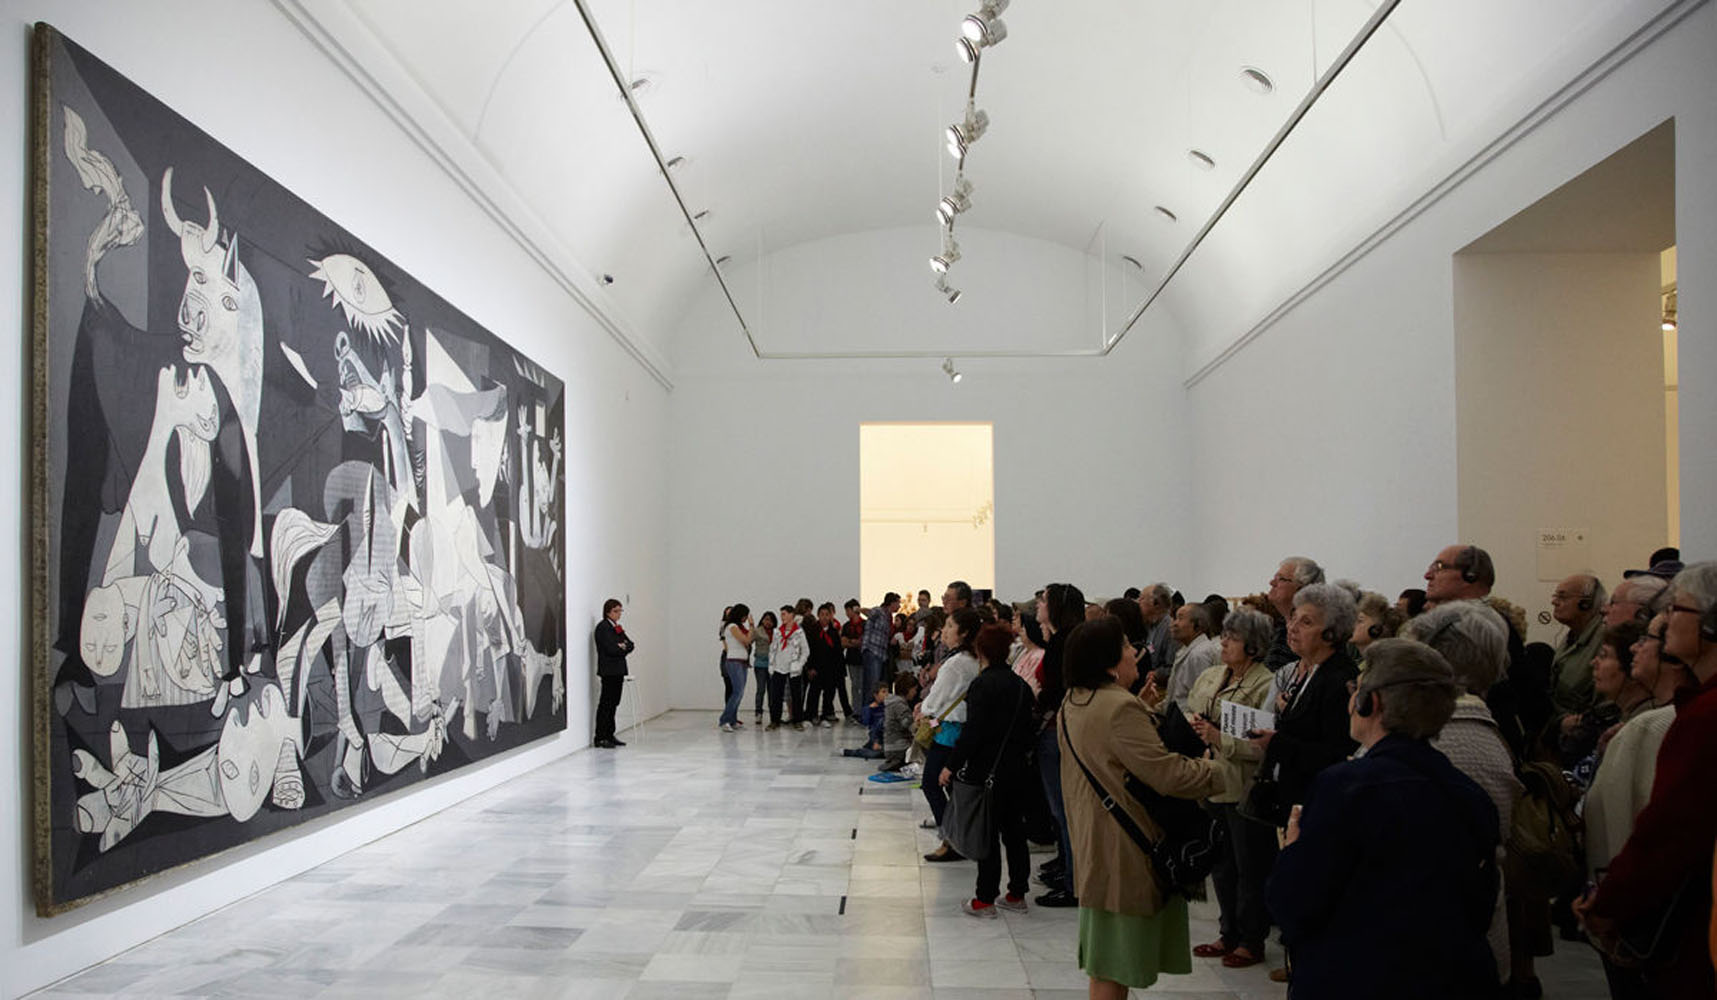 Guernica in Gallery for Display